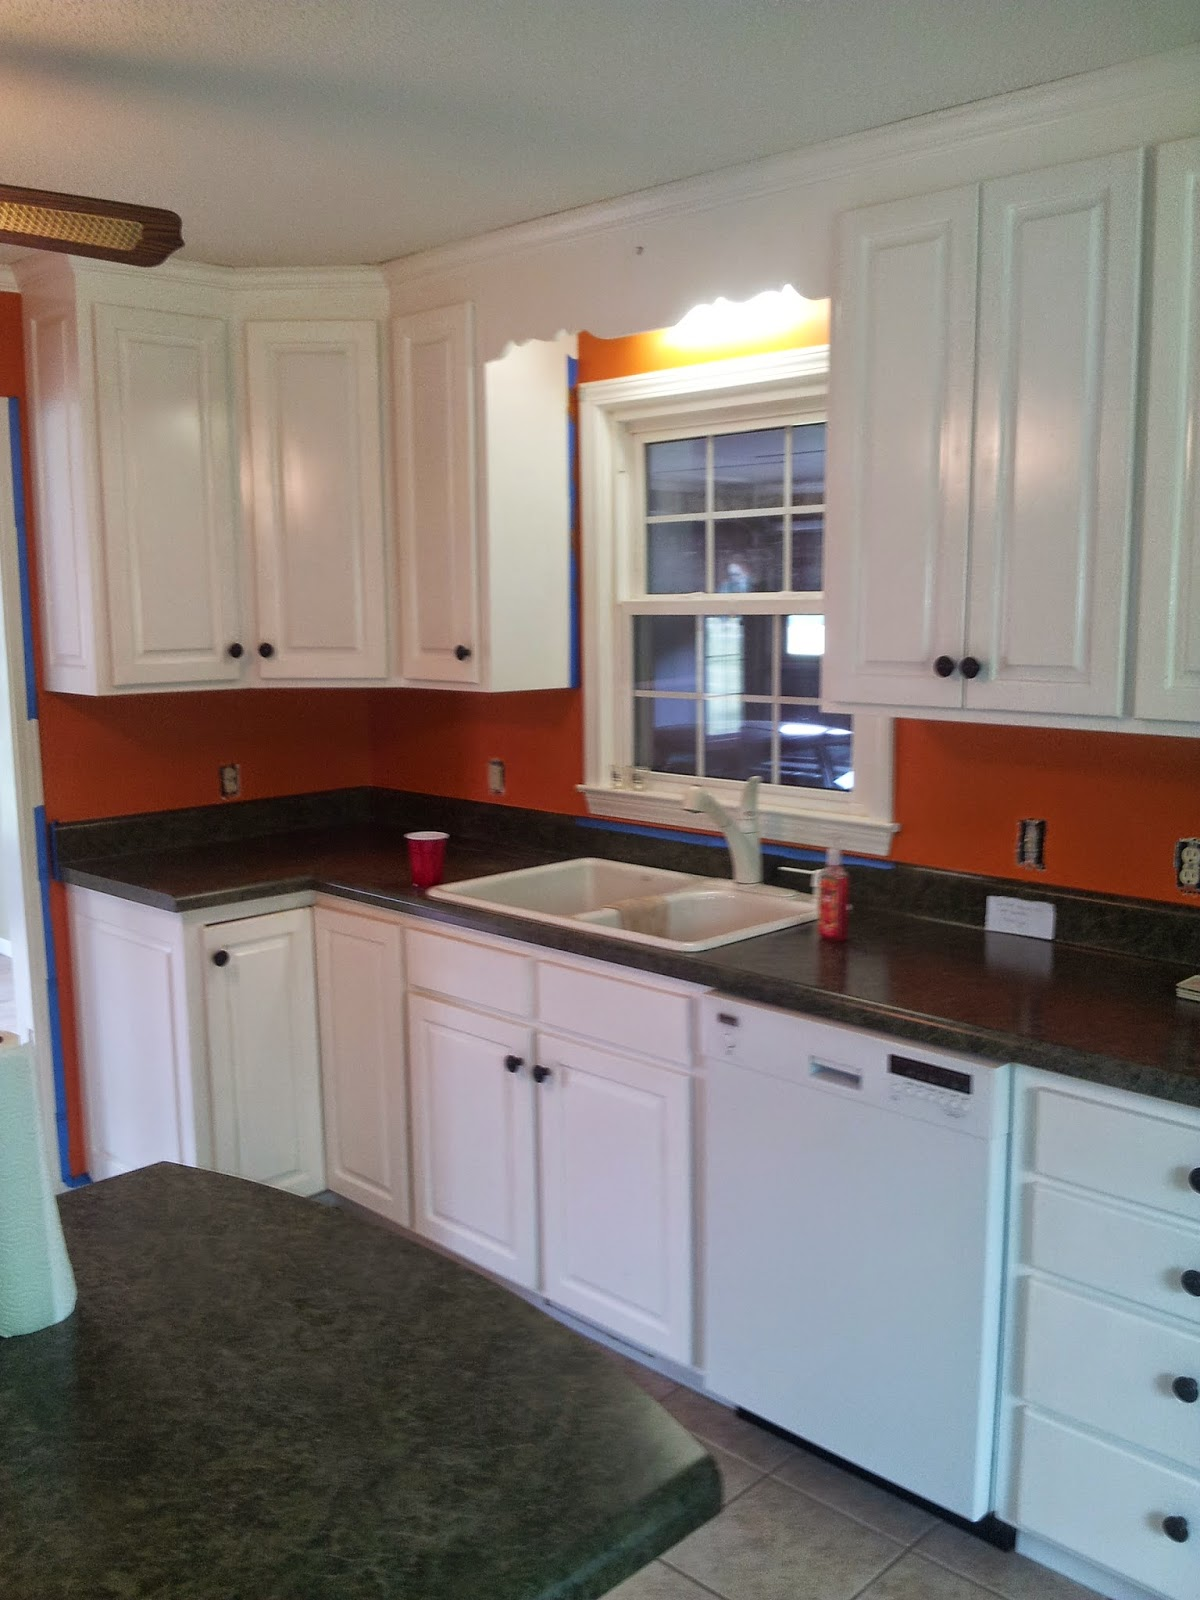 painters in Inman, house painters, interior painters